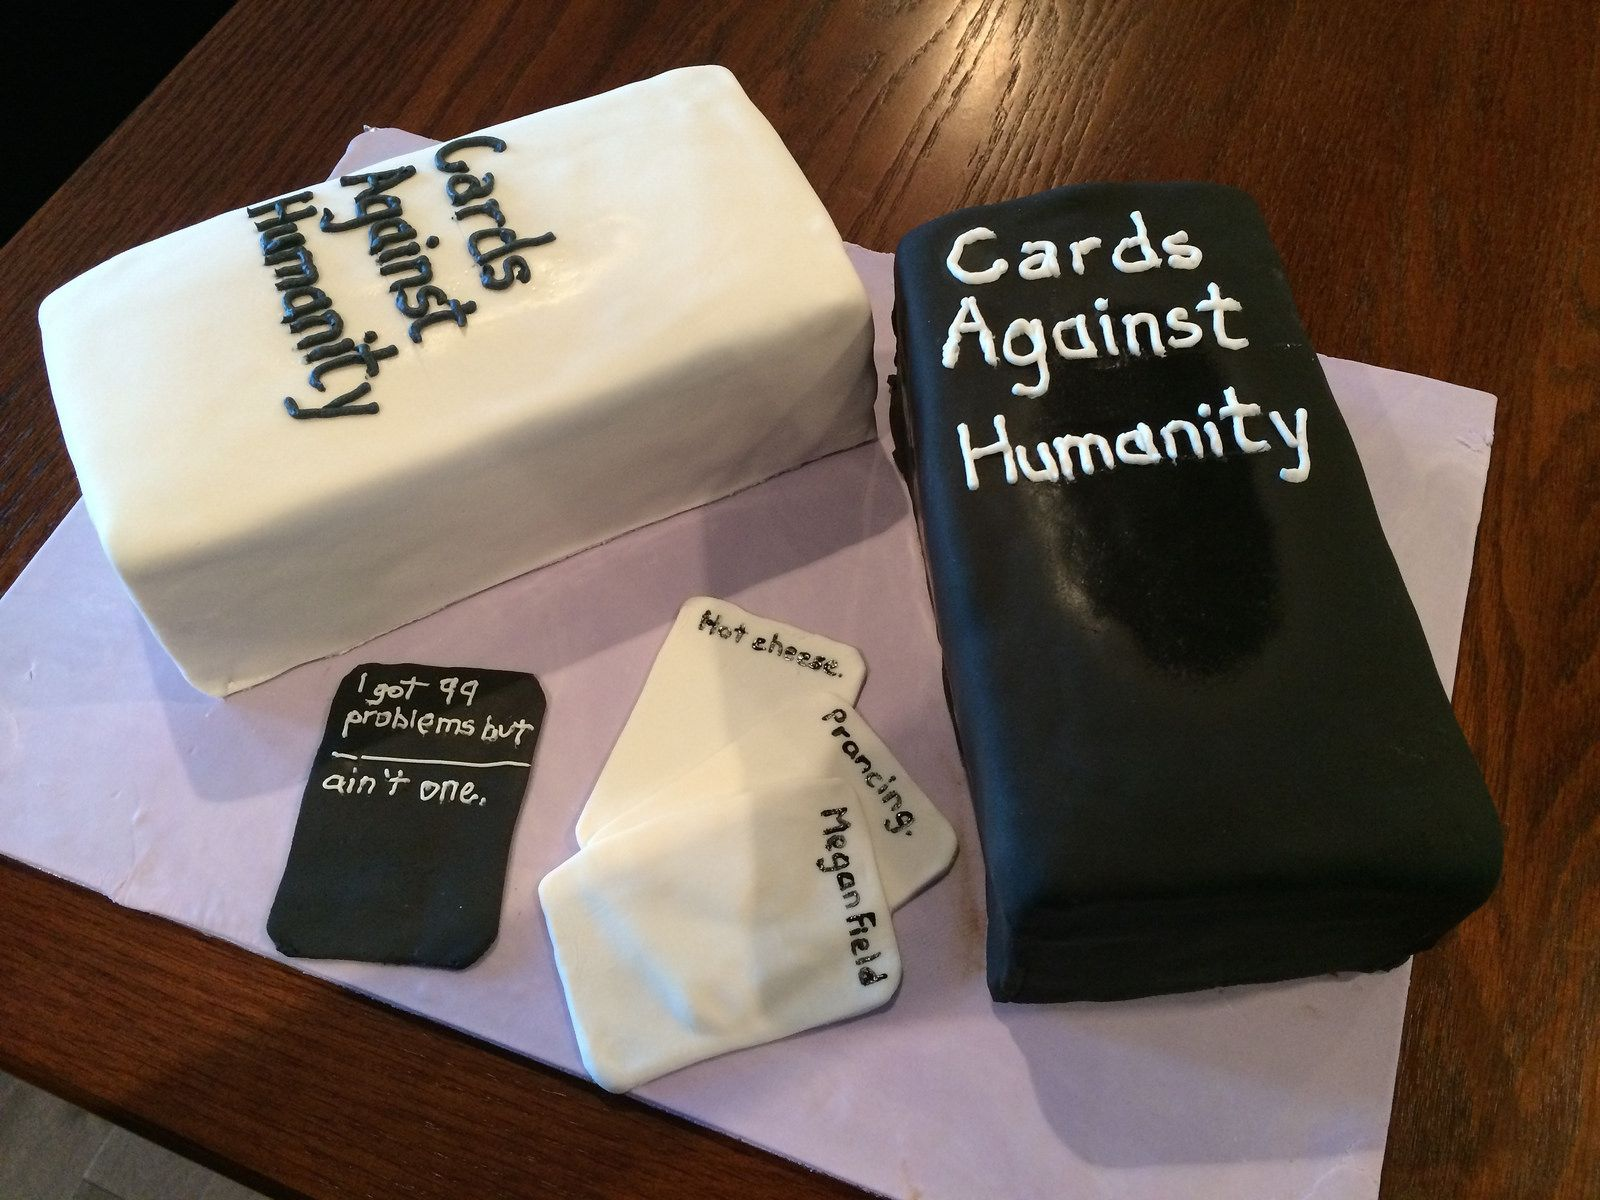 Cards against humanity cake cake white cakes and fondant cakes cards against humanity cake bookmarktalkfo Image collections